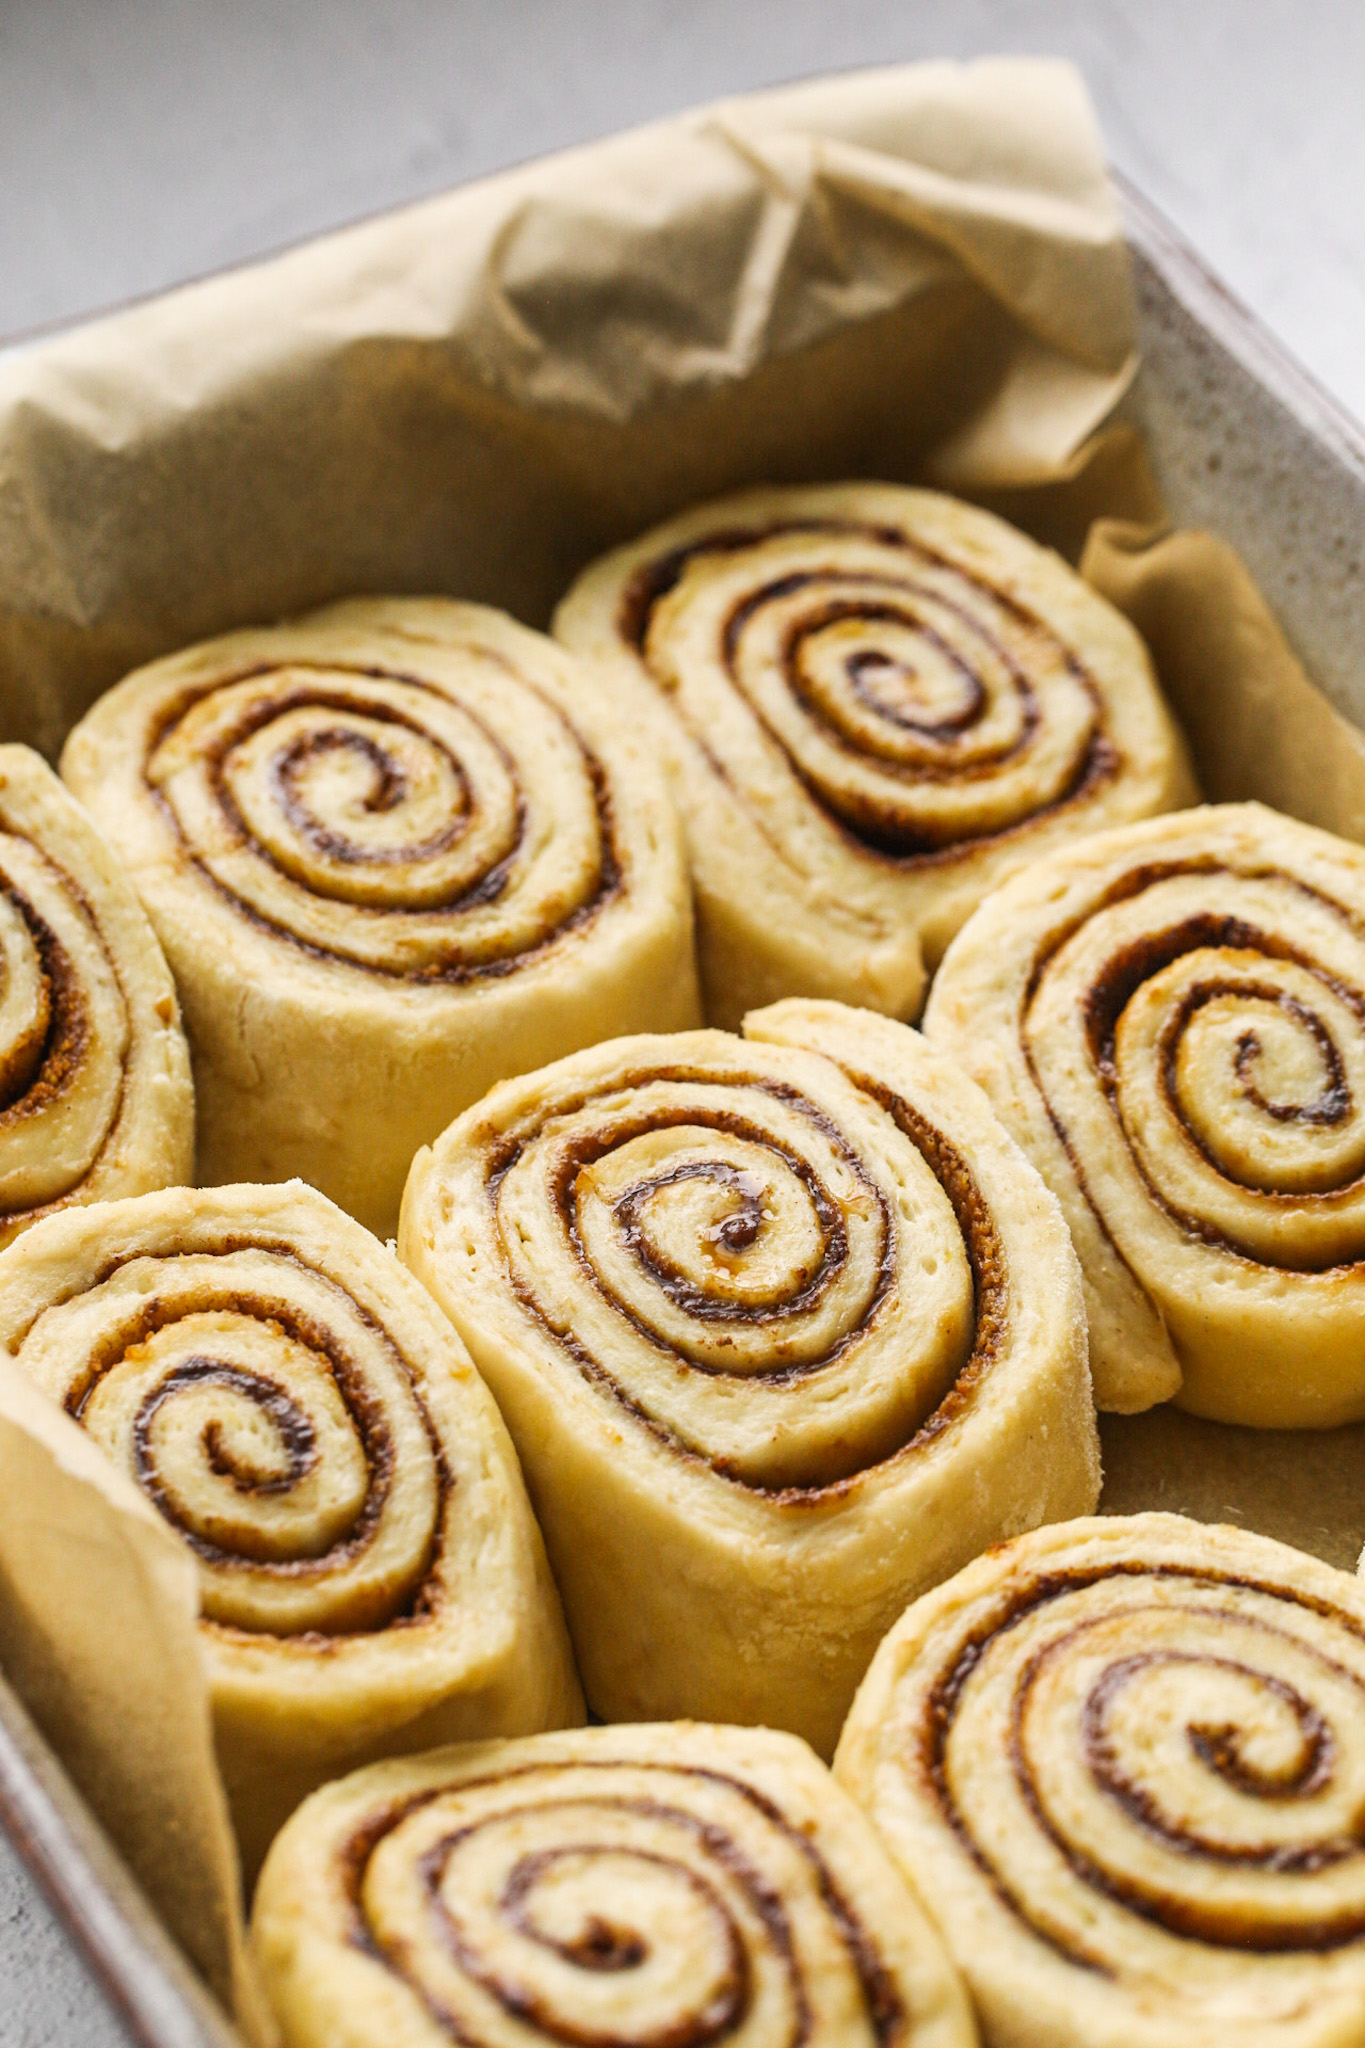 Ready to Bake Cinnamon Rolls in Baking Dish